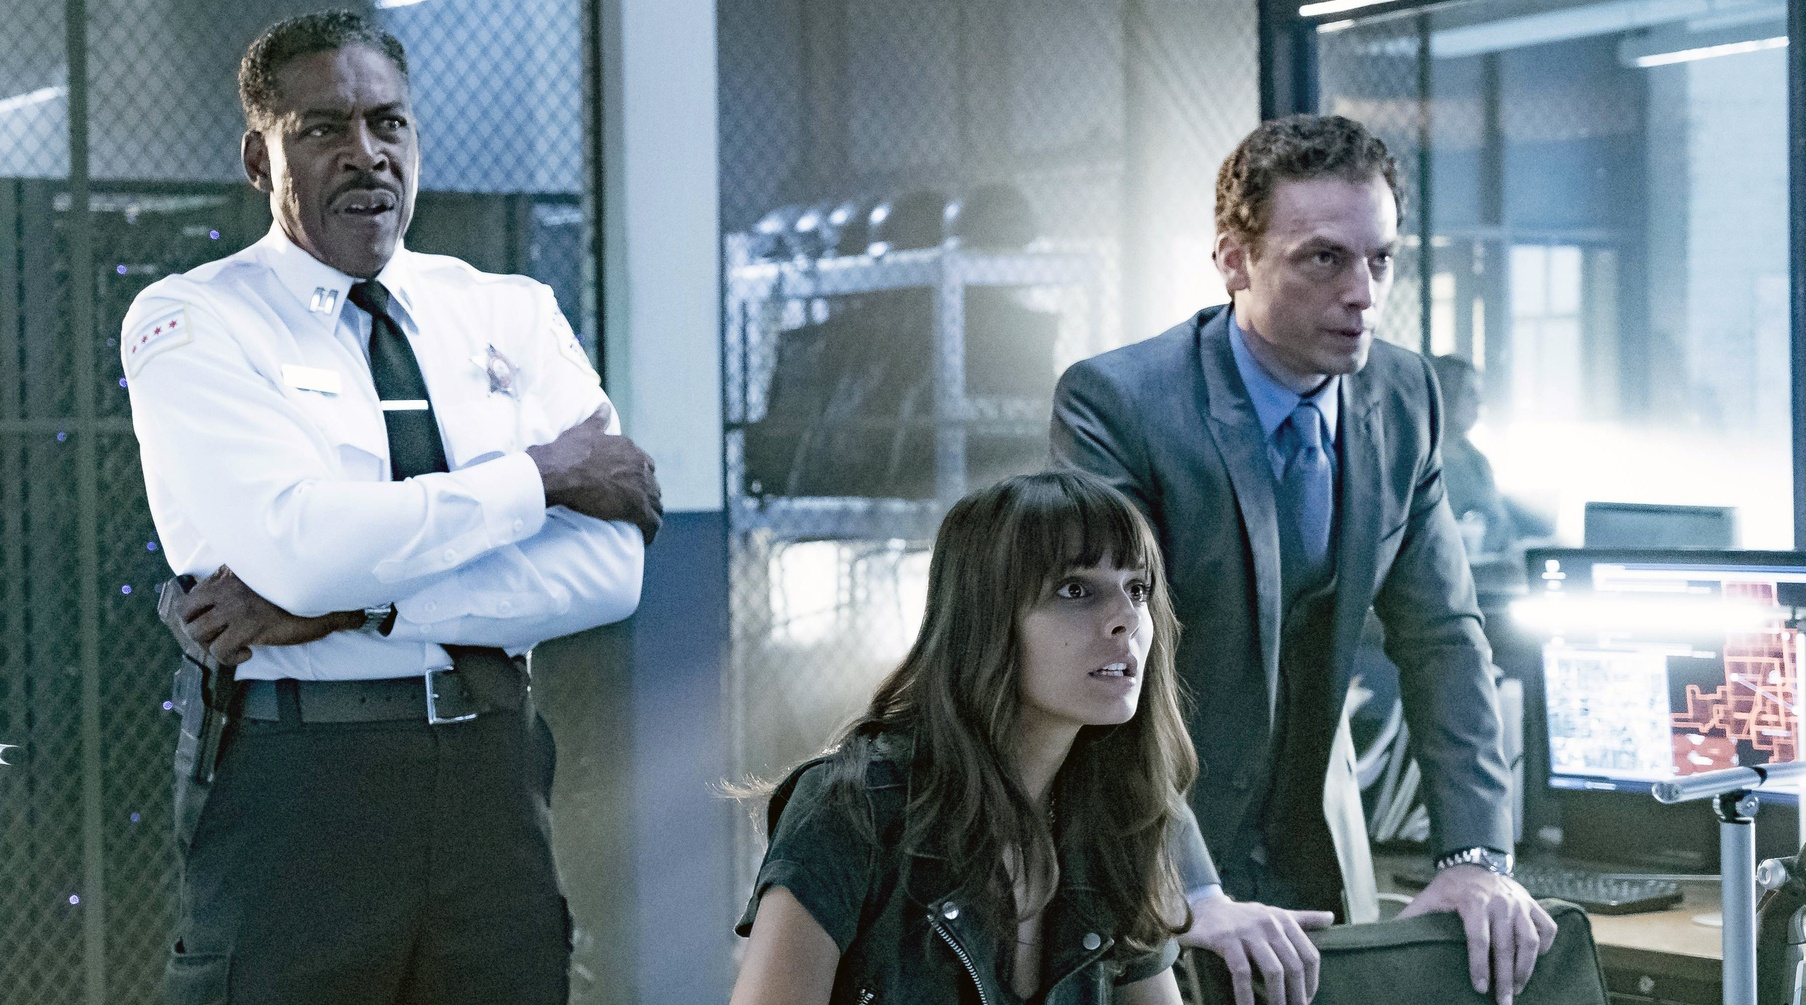 The cast of APB have a tense conference in a scene from the Fox show